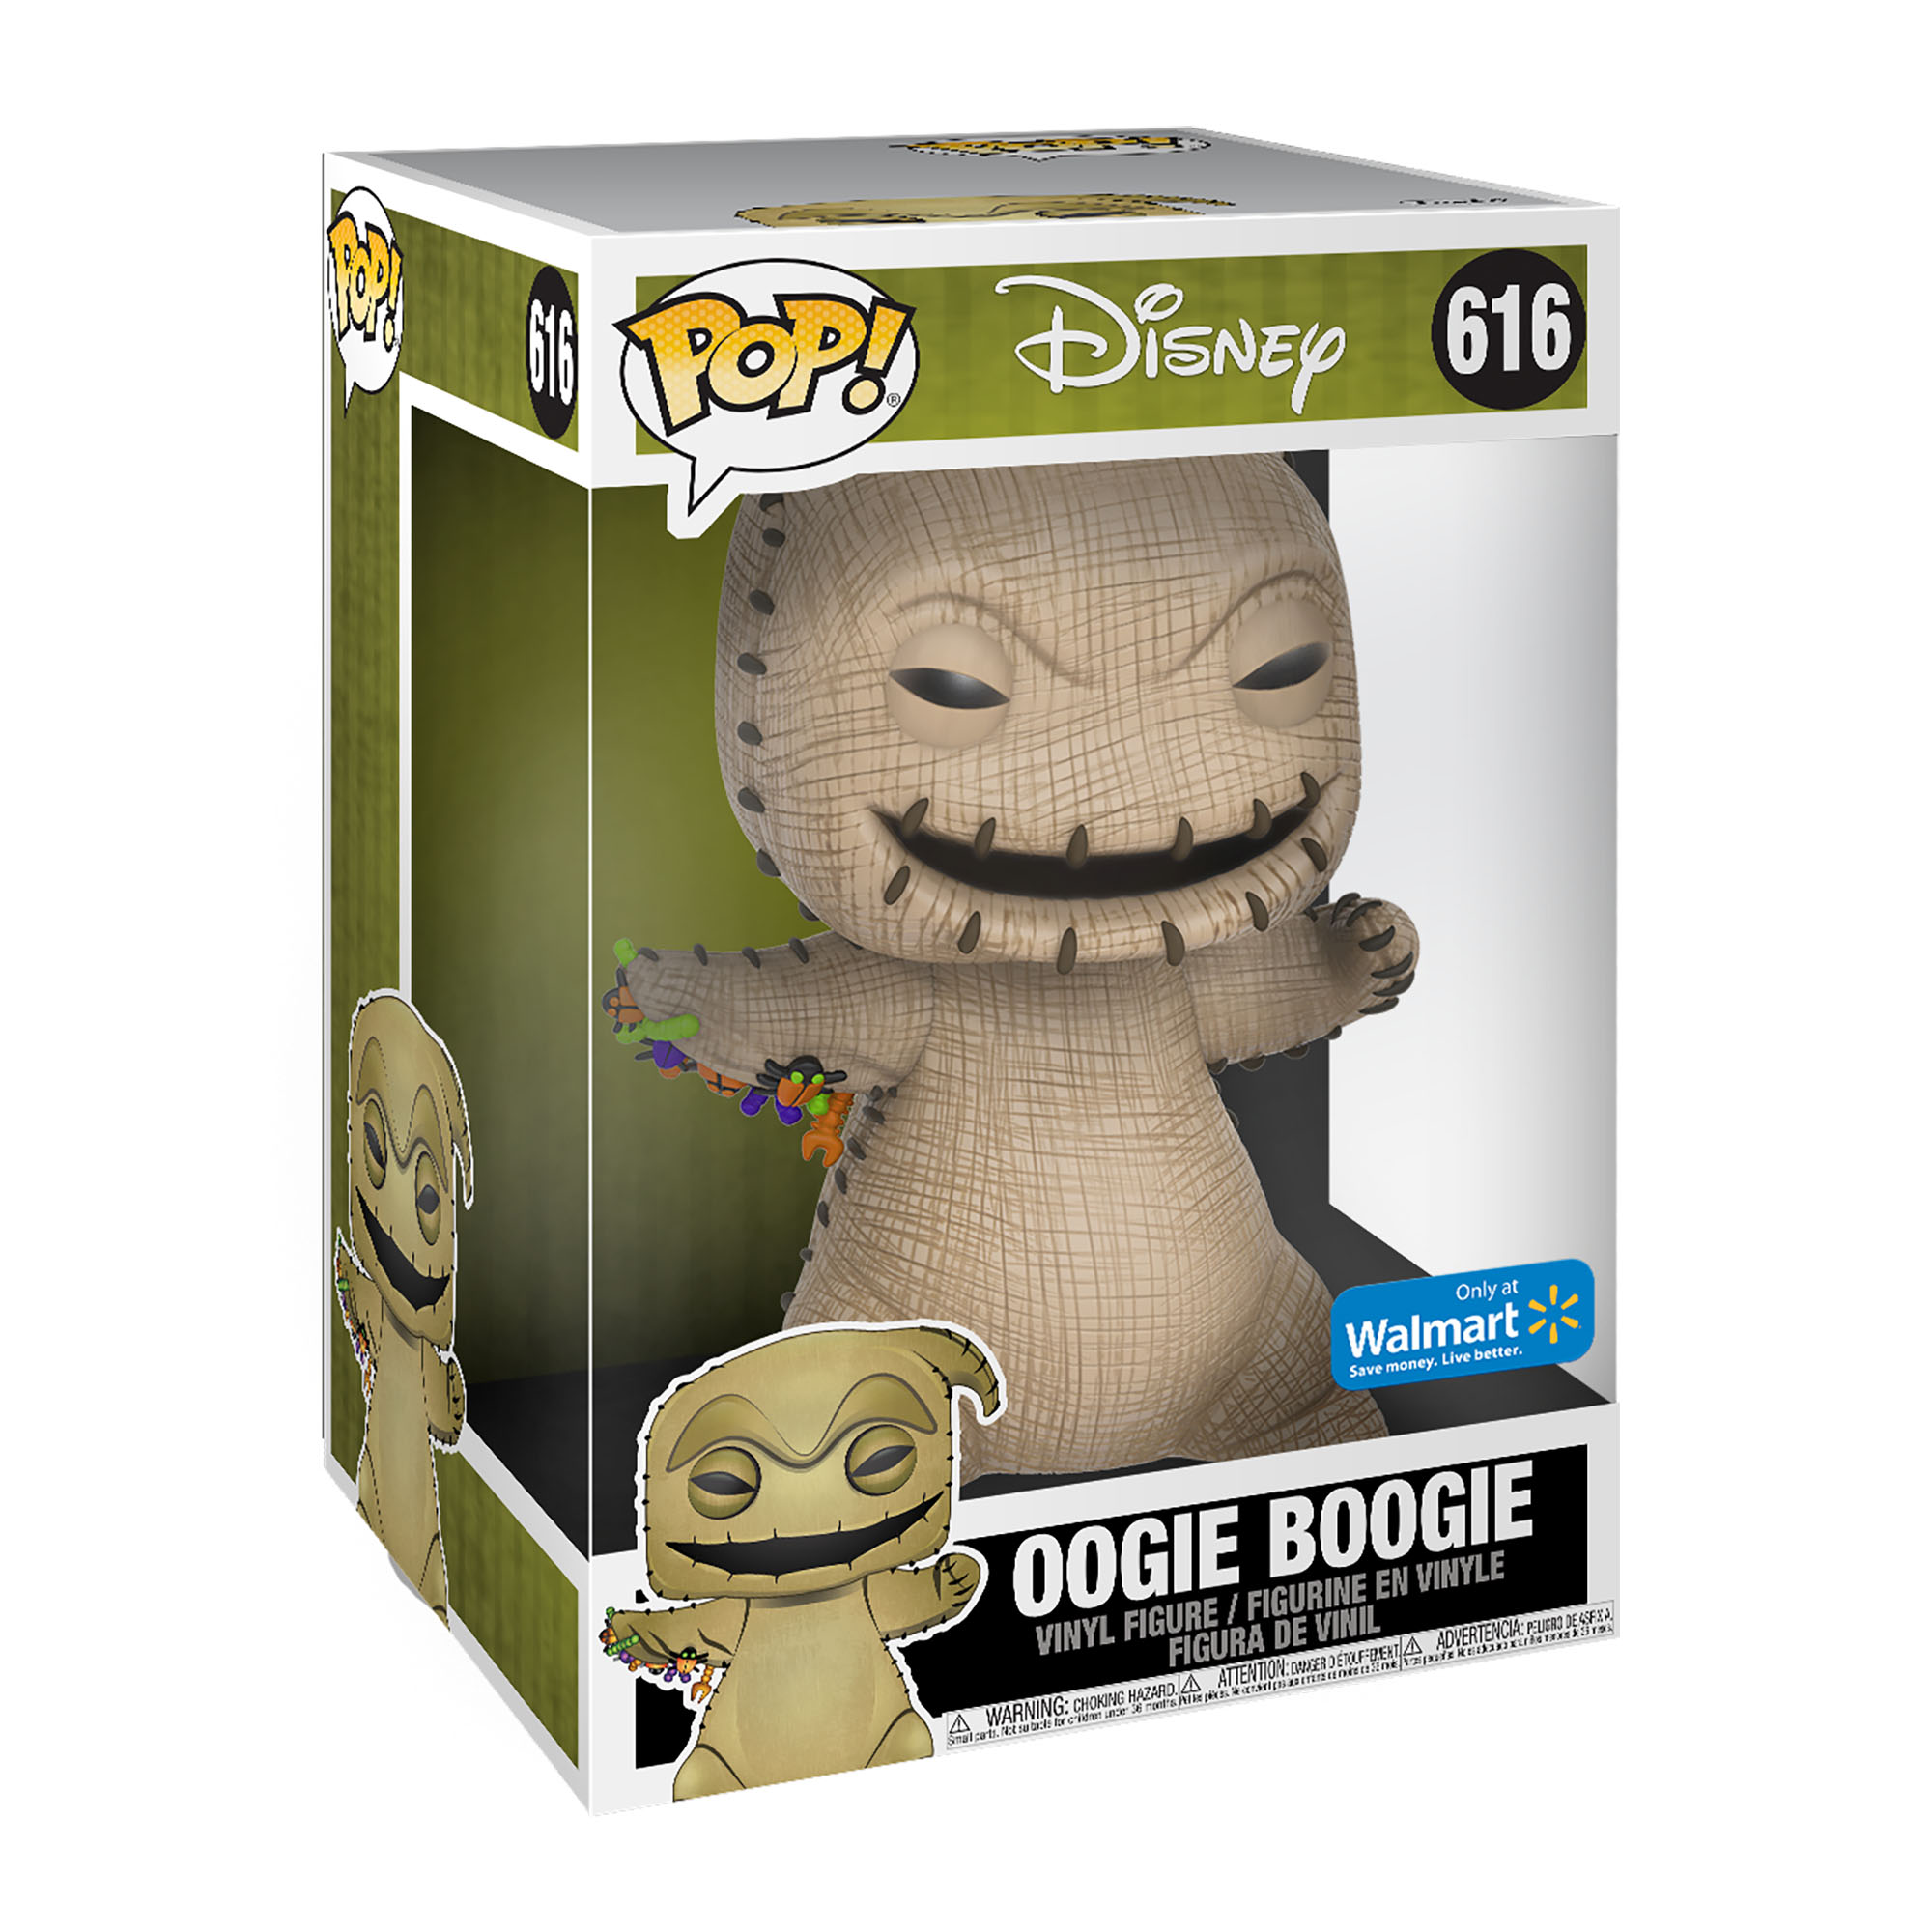 Funko Pop Disney The Nightmare Before Christmas 10 Oogie Boogie Walmart Exclusive Walmart Com Walmart Com Oogie's revenge is a video game for the playstation 2 and xbox platforms. funko pop disney the nightmare before christmas 10 oogie boogie walmart exclusive walmart com